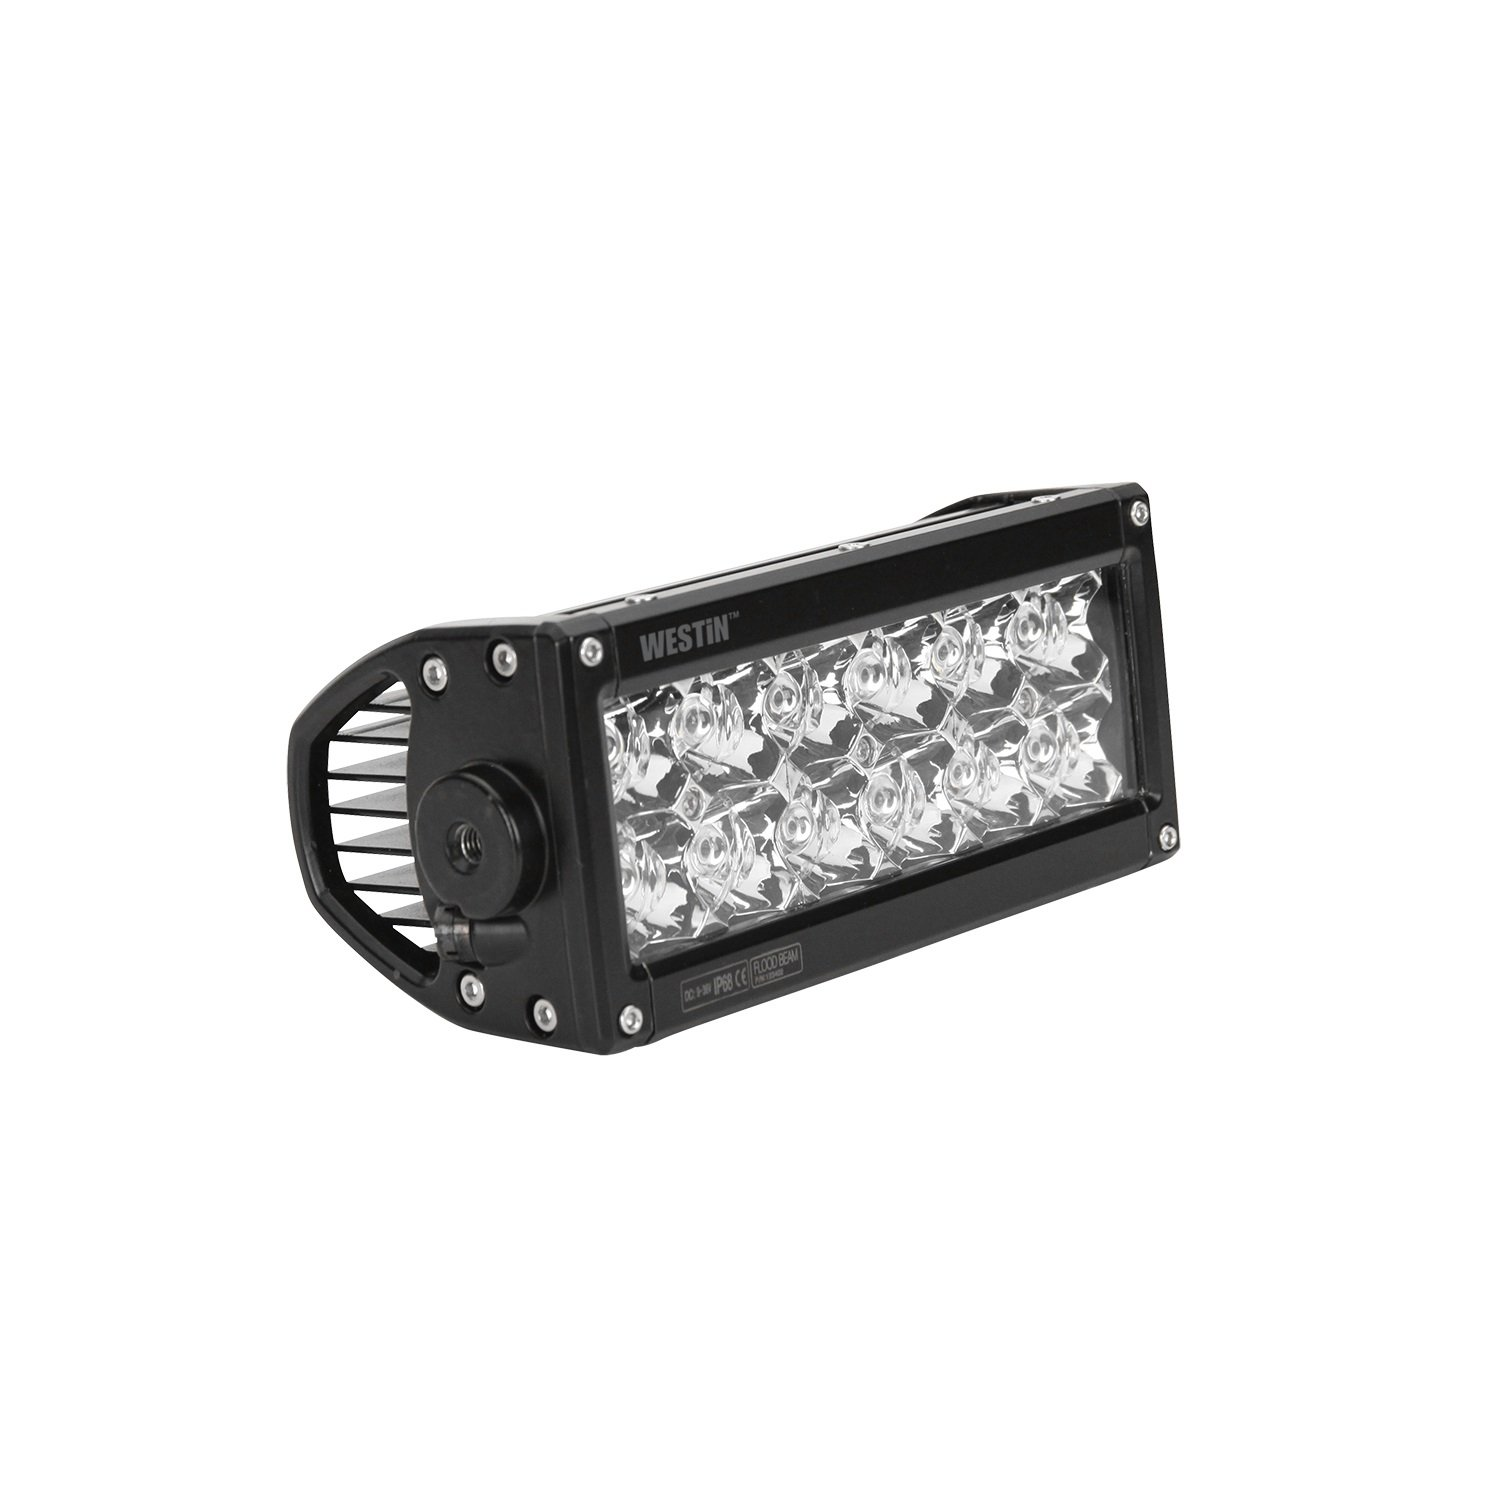 Westin 09-12230-12S Low Profile Double Row LED Light Bar